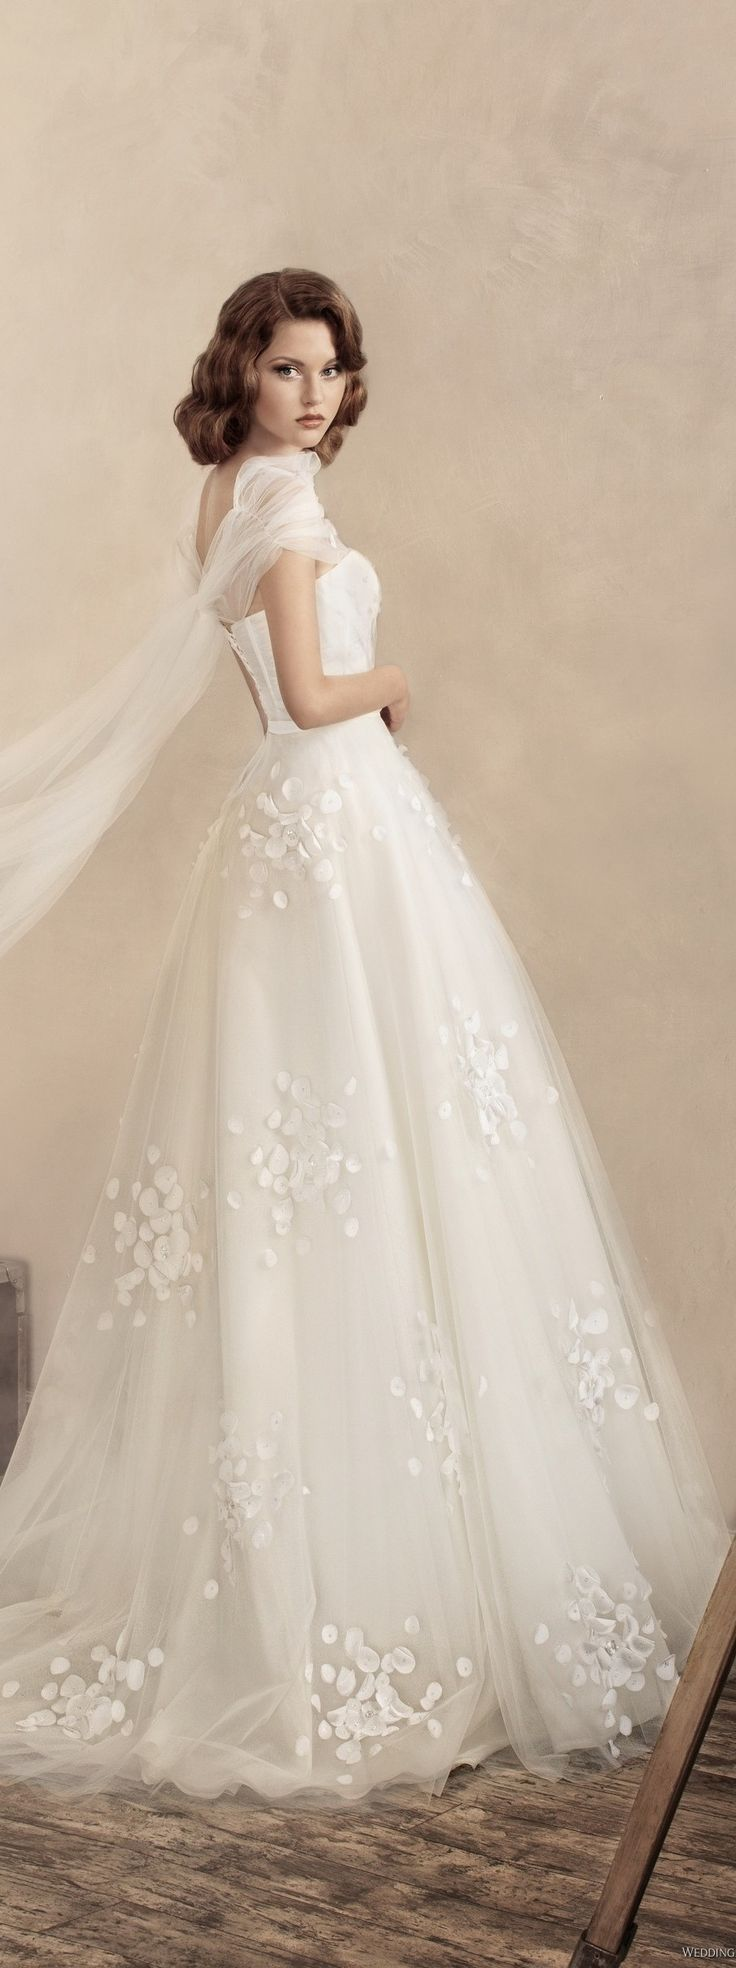 21 best boutique natalia exclusif images on pinterest marriage angelina wedding gown papilio bridal collection available at boutique natalia exclusif montreal nice ombrellifo Images